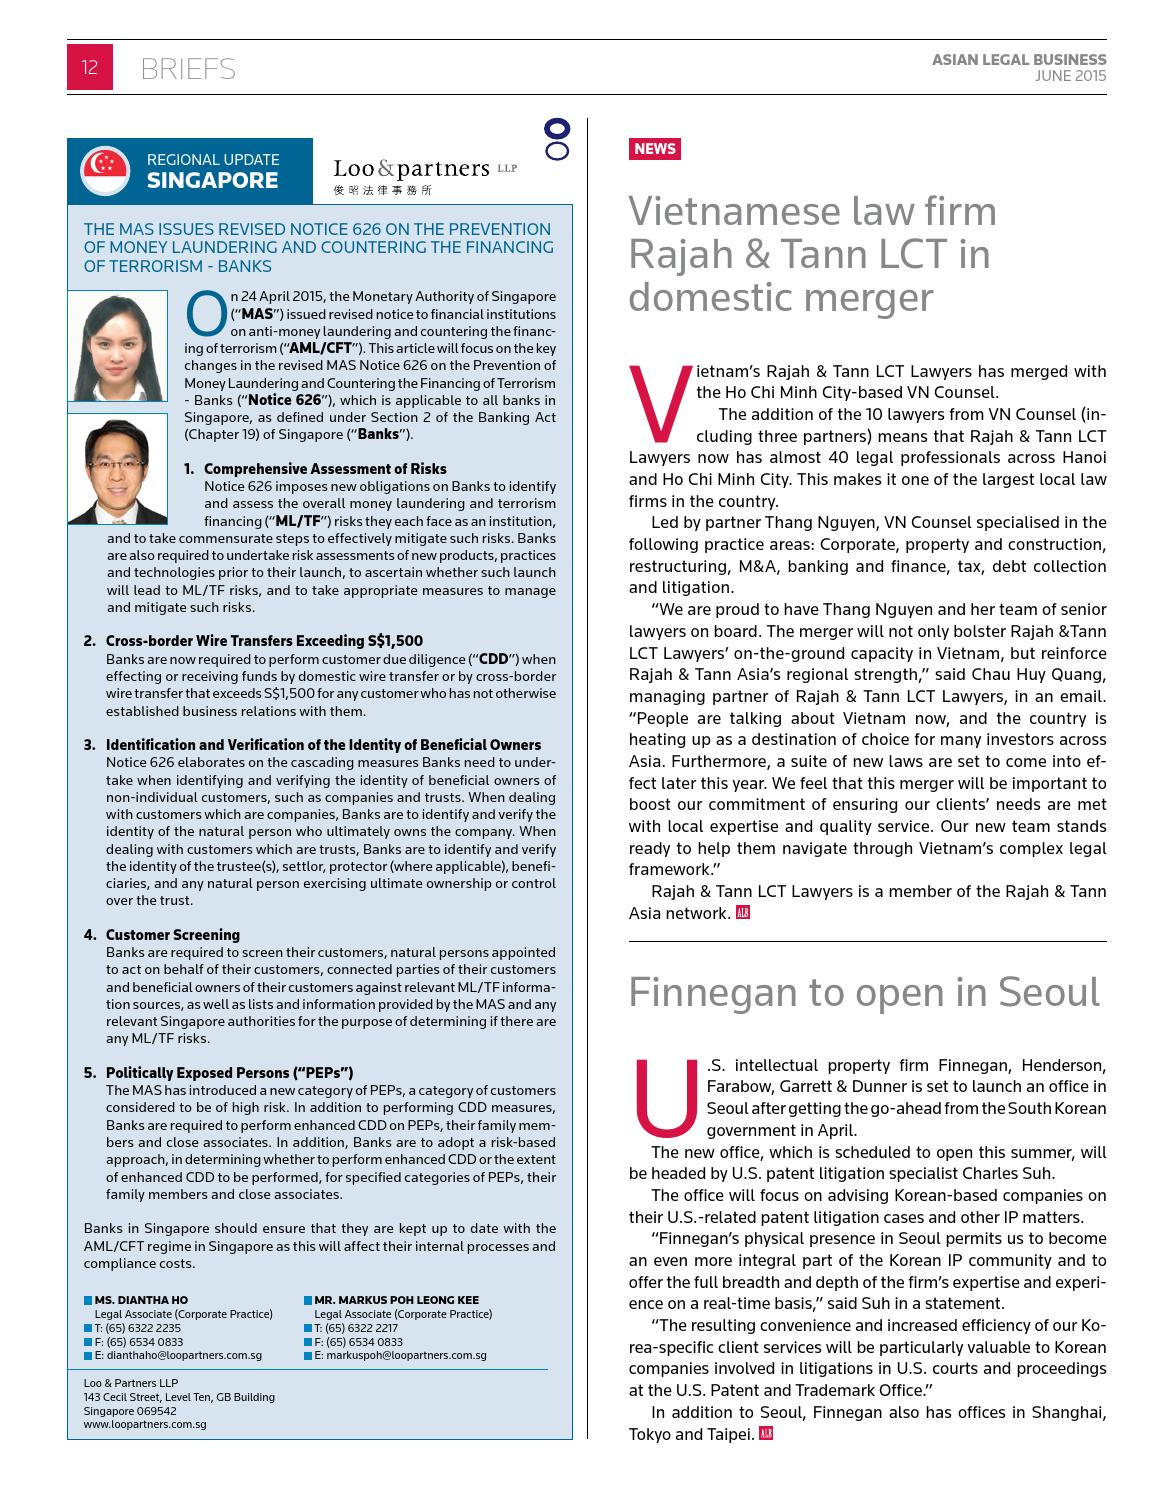 Asian Legal Business June 2015 by Asian Legal Business - issuu